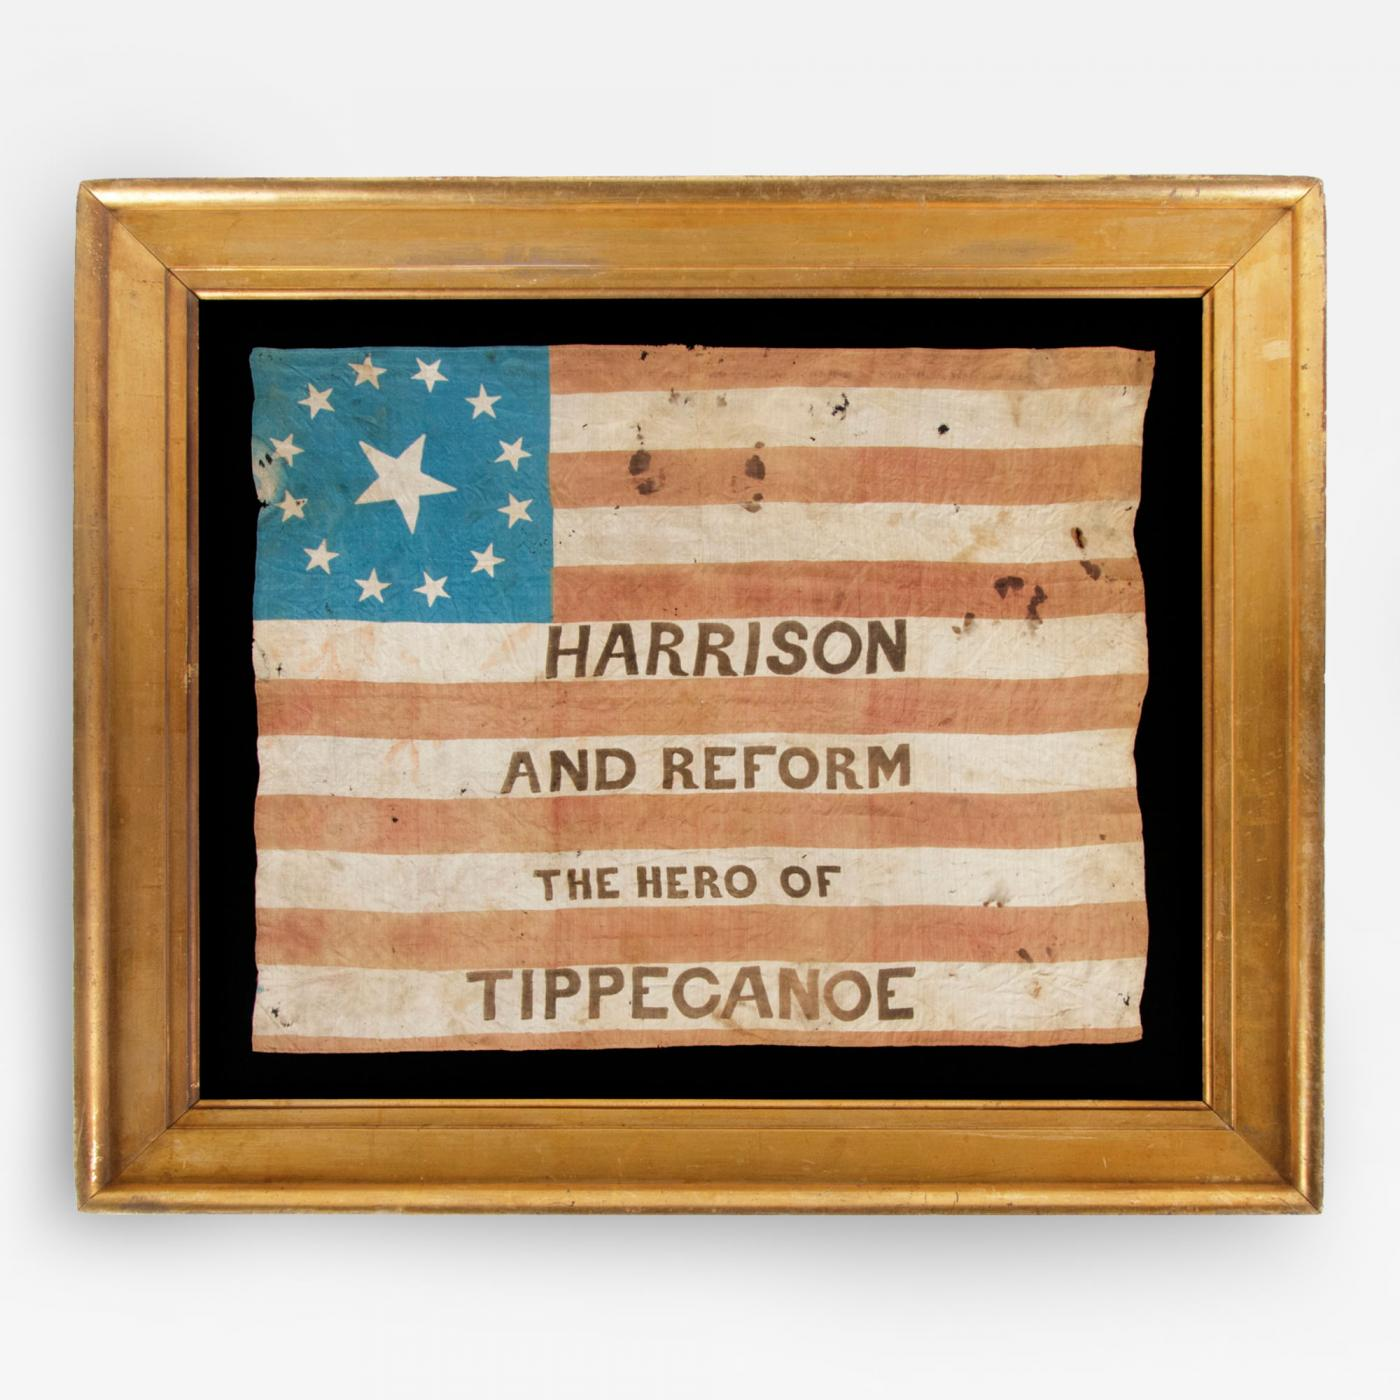 Dillsburg (PA) United States  city photos gallery : Rare Example Parade Flag From The 1840 Presidential Campaign of W. H ...